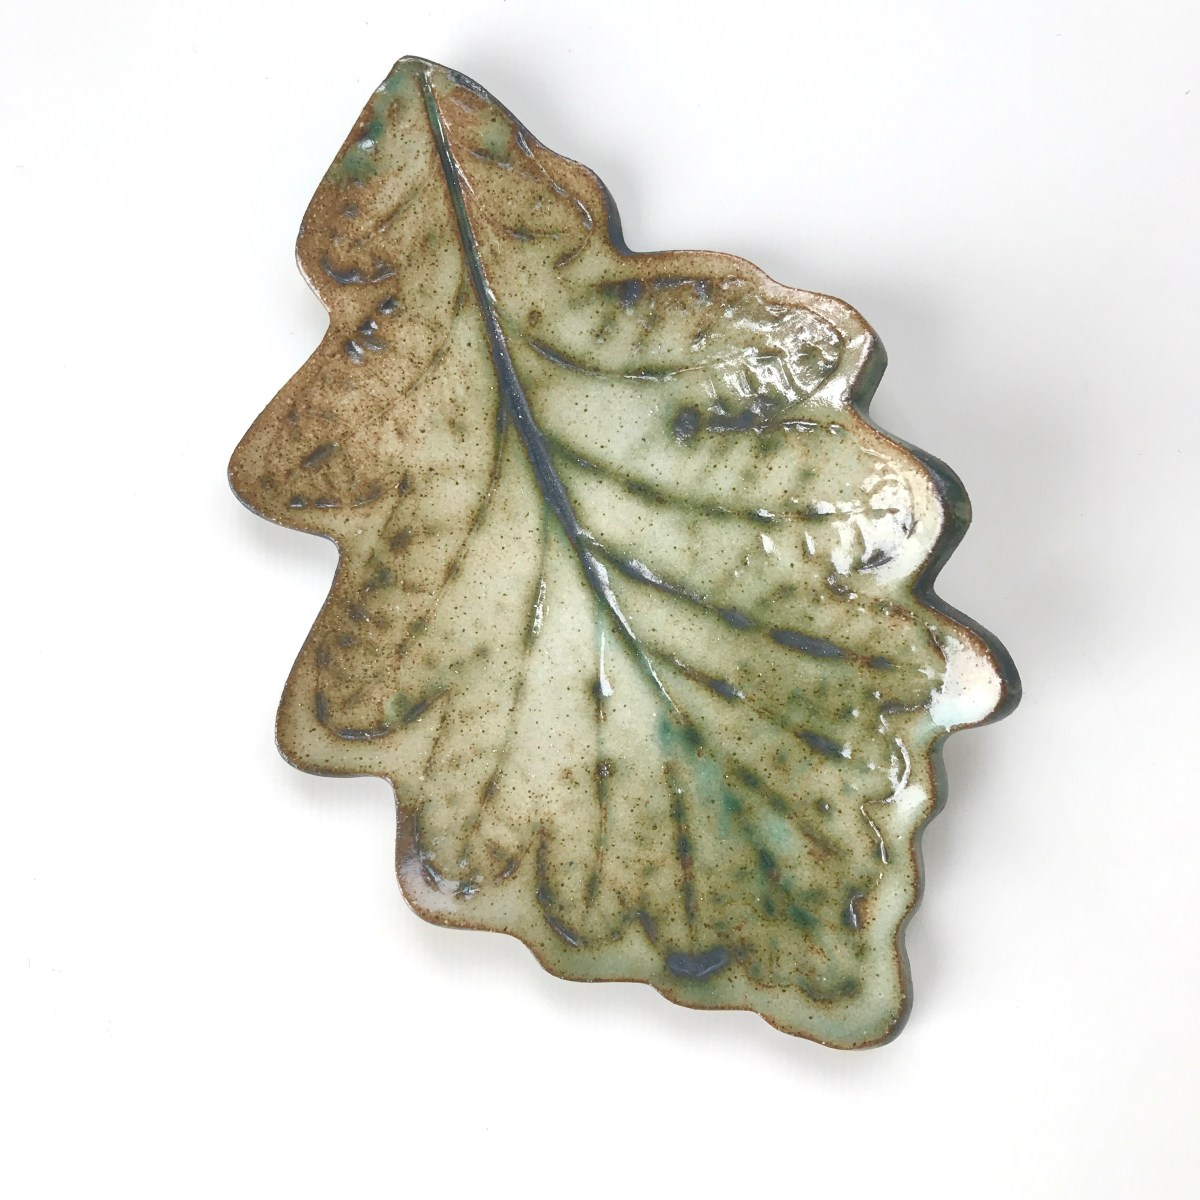 Fallen Leaf Ceramic Wall Art by Sonya Ceramic Art - Rustic Green Common Oak Leaf Design